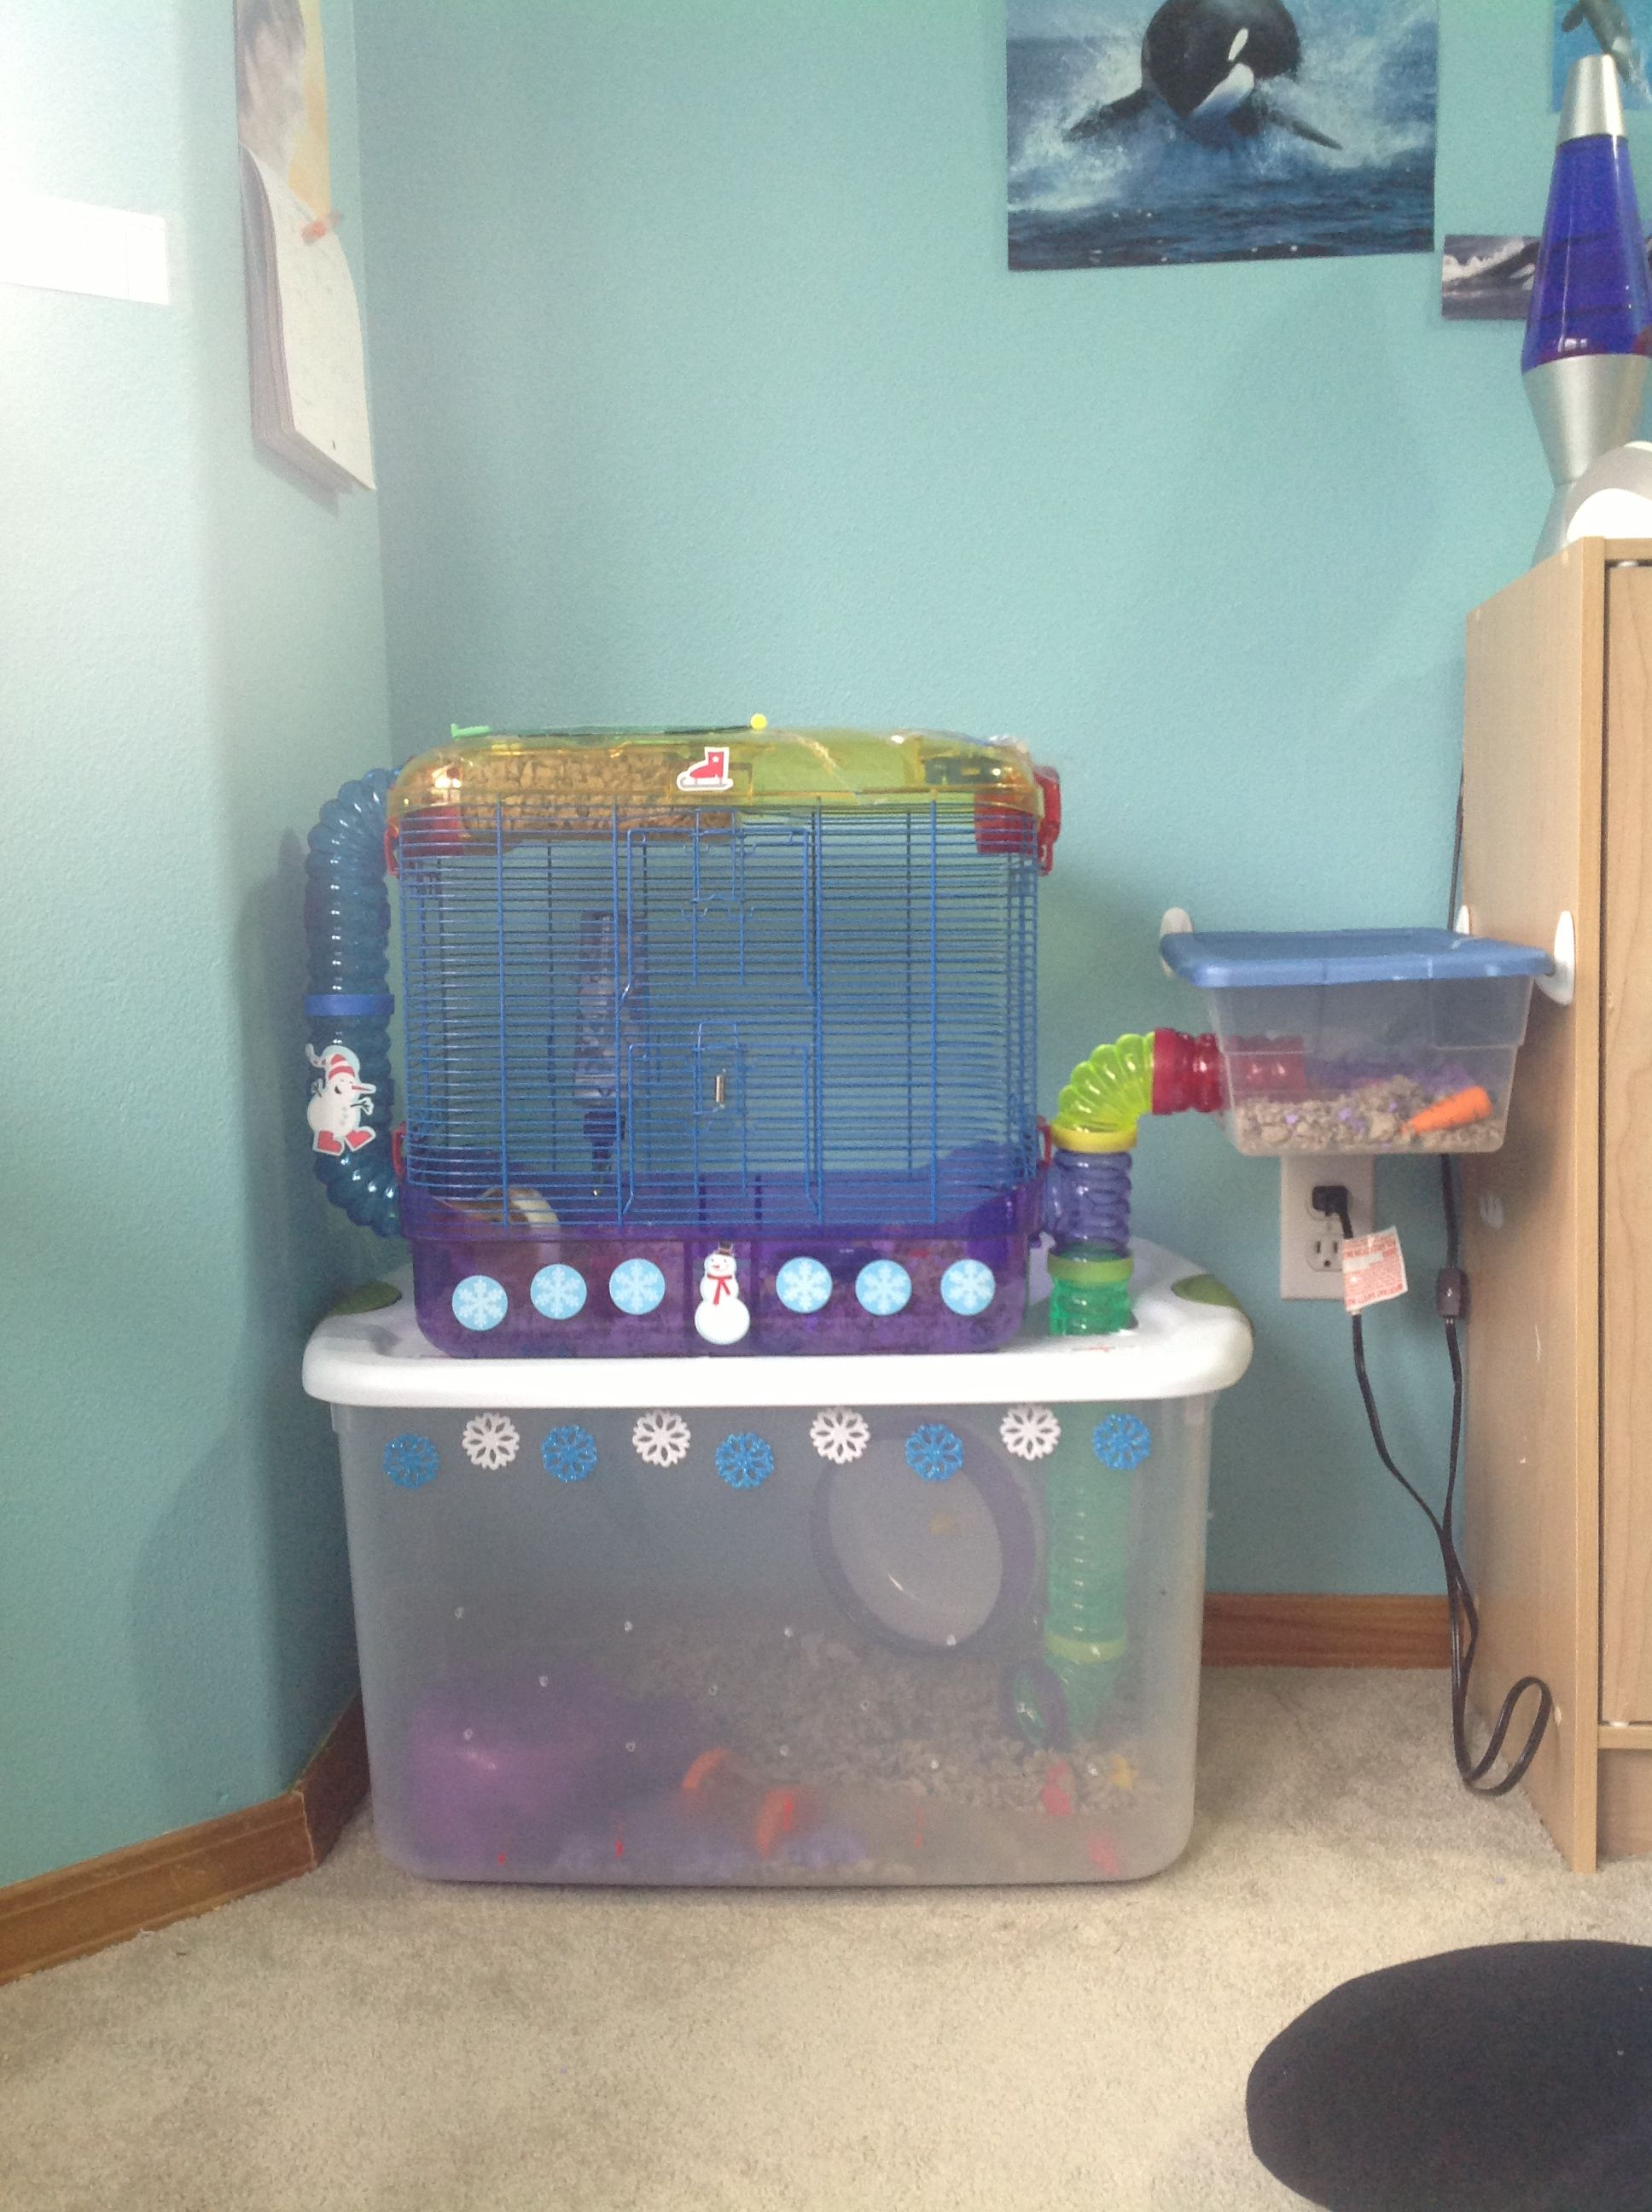 Pin By Kaycee Chang On Hamster Cages Cool Hamster Cages Hamster Bin Cage Hamster Care